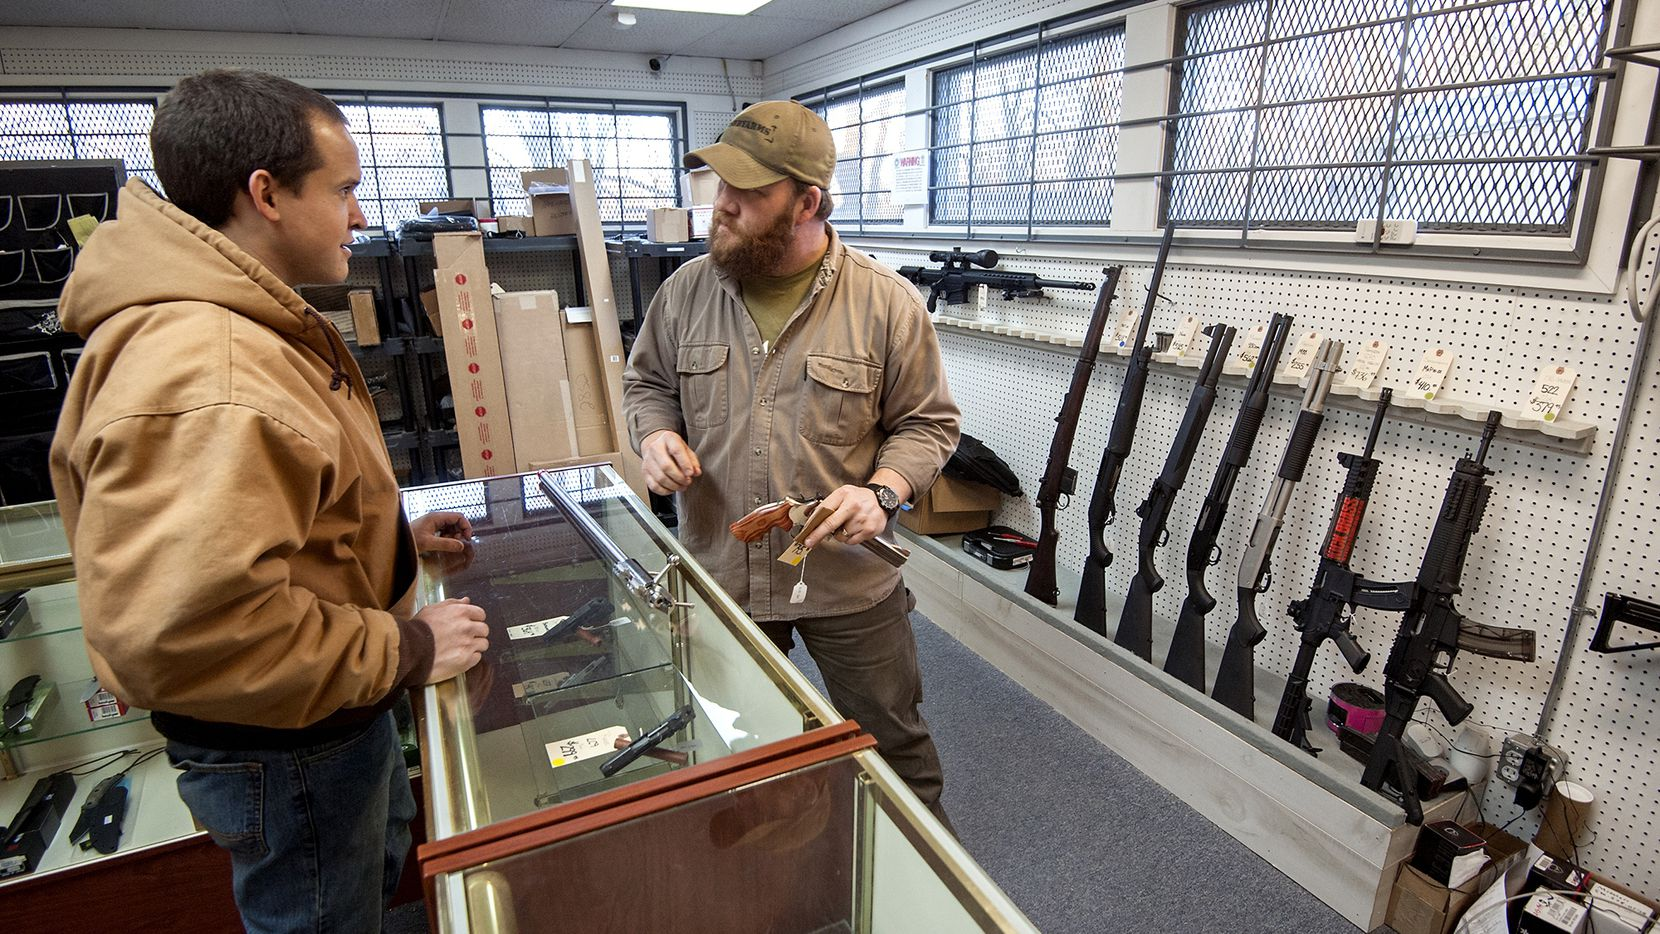 Shane Farren of Ashby Arms, Va., talks with customer Daniel Suter about stock options for his competition rifle.